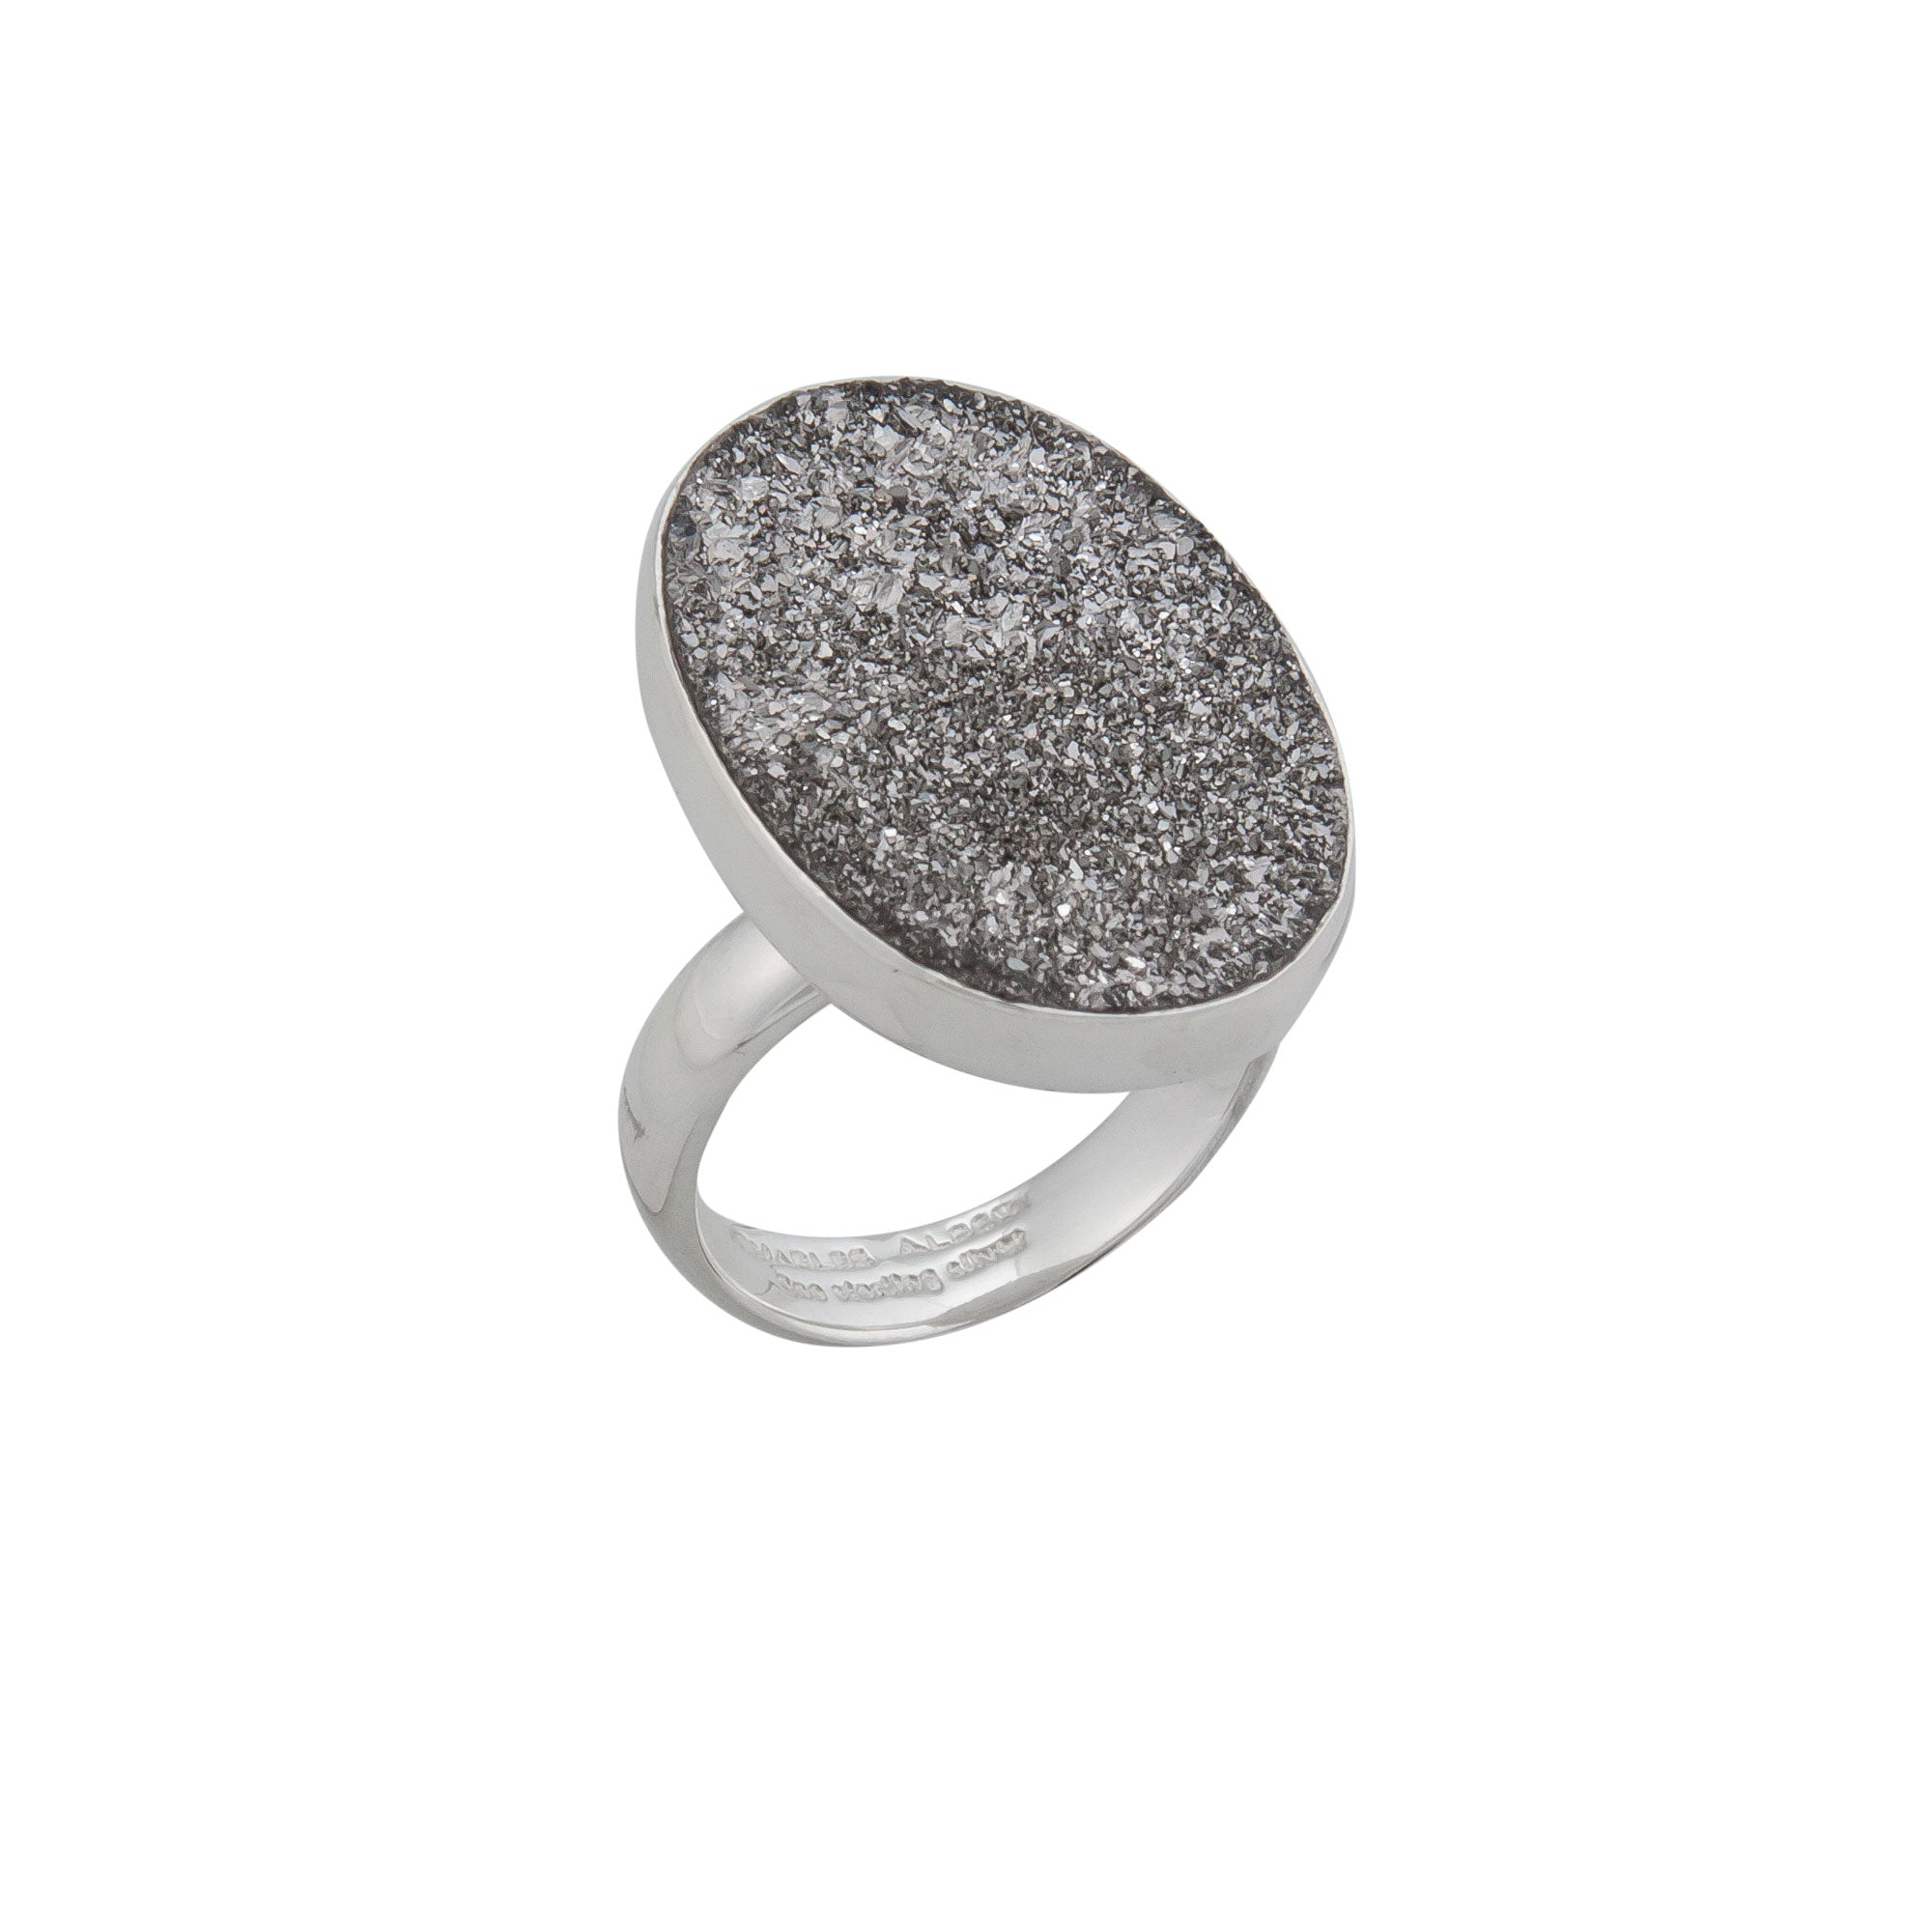 Sterling Silver Oval Platinum Druse Adjustable Ring | Charles Albert Jewelry